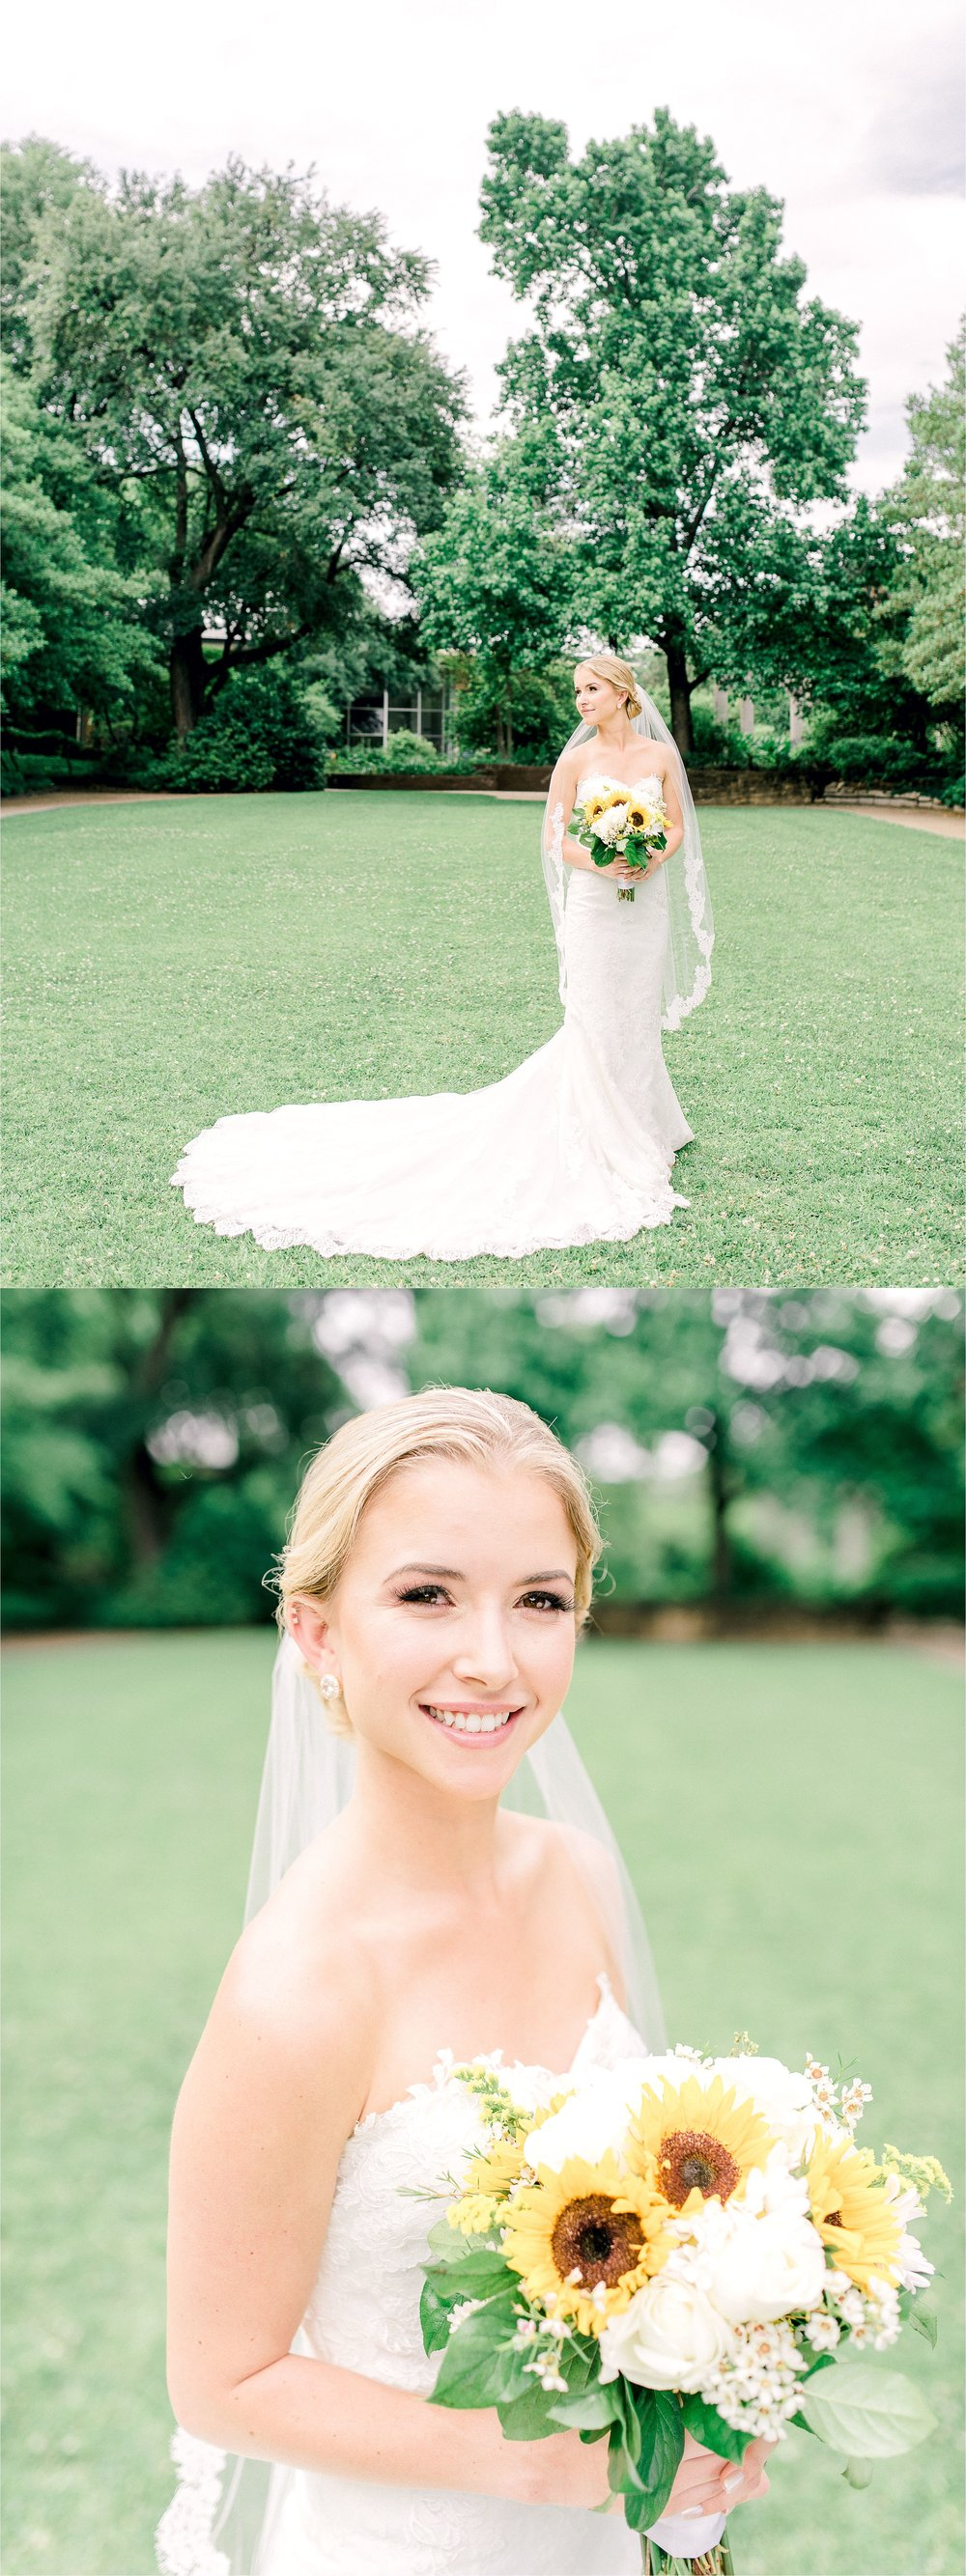 CHUALEEPHOTOGRAPHY_TEXASWEDDINGPHOTOGRAPHER_TEXASDISCOVERYGARDENS_1002.jpg